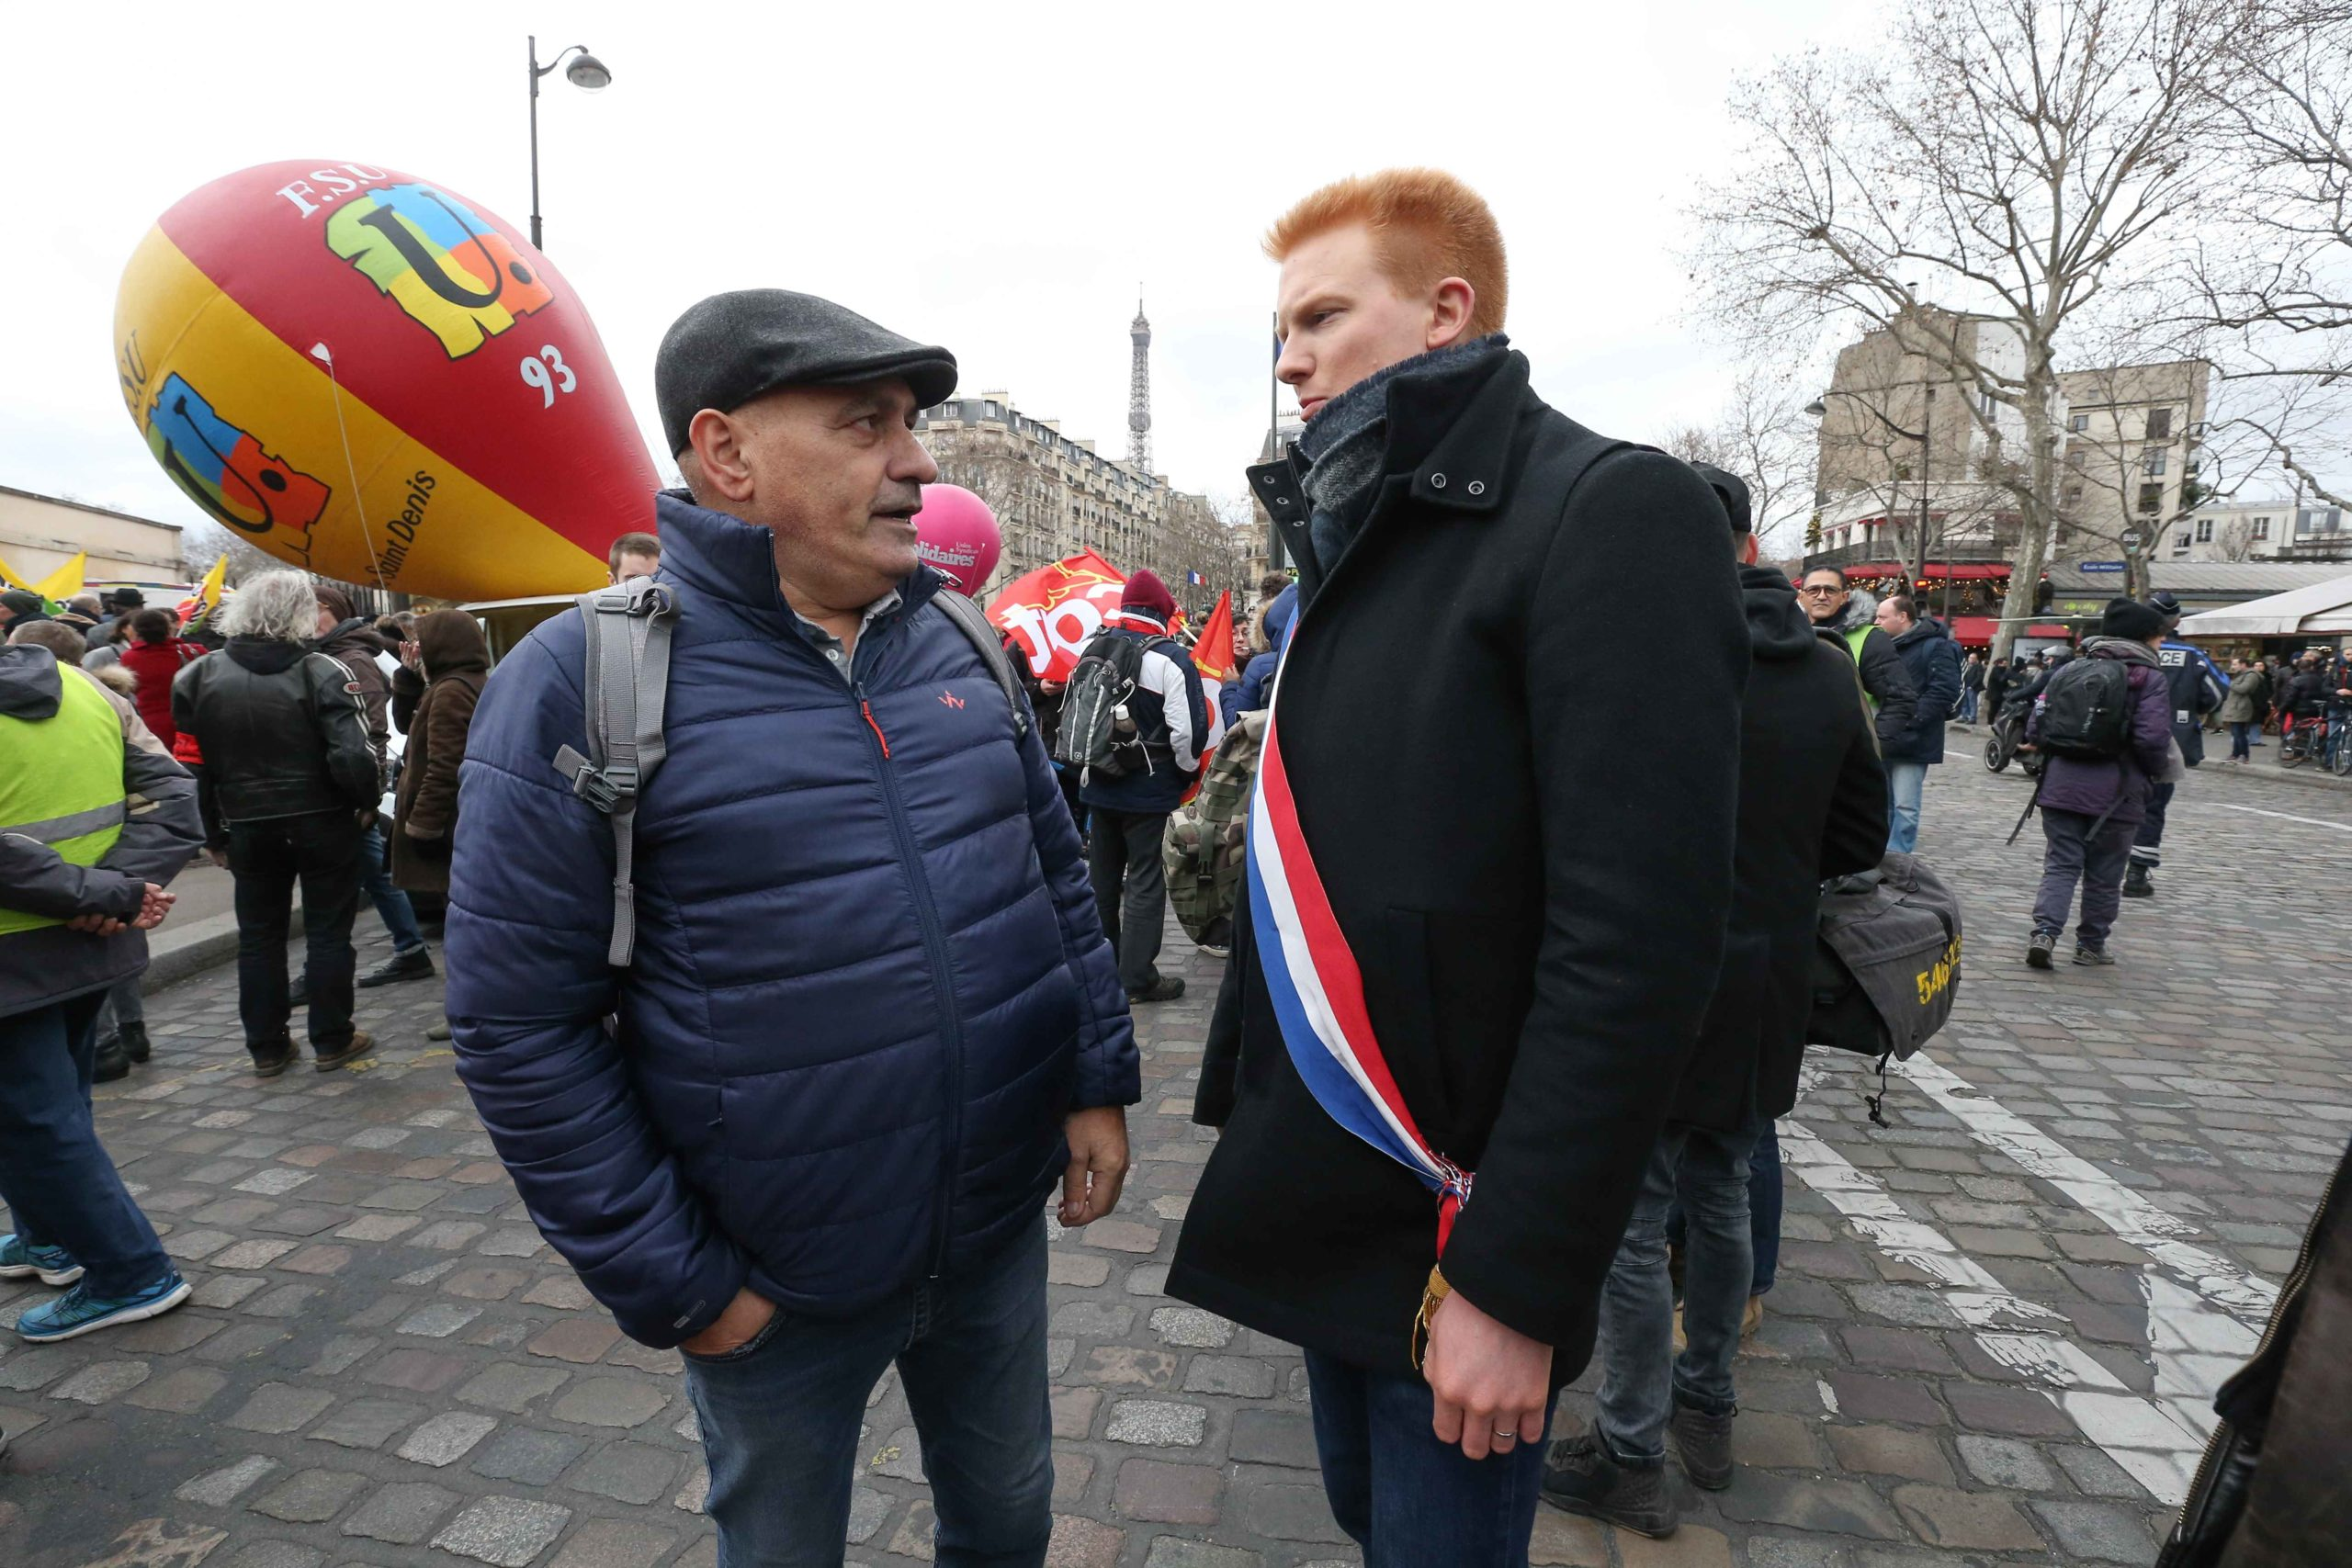 French leftist party La France Insoumise (LFI) MP Adrien Quatennens (R) takes part in a demonstration in front the Tour Eiffel in Paris on January 14, 2020, as part of a nationwide multi-sector strike against the French government's pensions overhaul.A tr